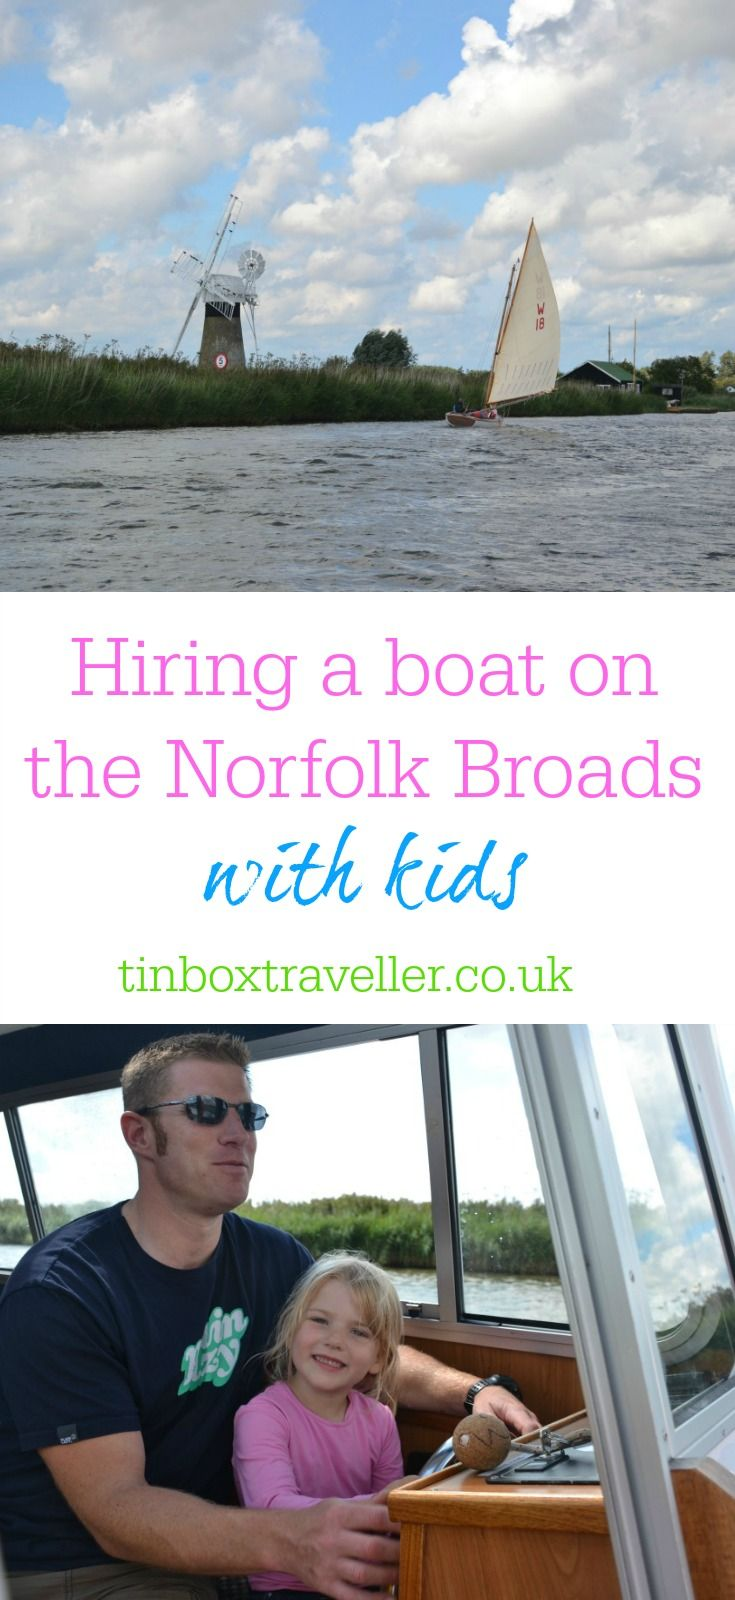 Norfolk is famous for its 125 miles of lock-free waterways. Here's a family day out the Norfolk Broads and some tips for hiring a boat with kids #UKholiday #Norfolk #NorfolkBroads #boating #boathire #familydayout #familytravel #boatingtips